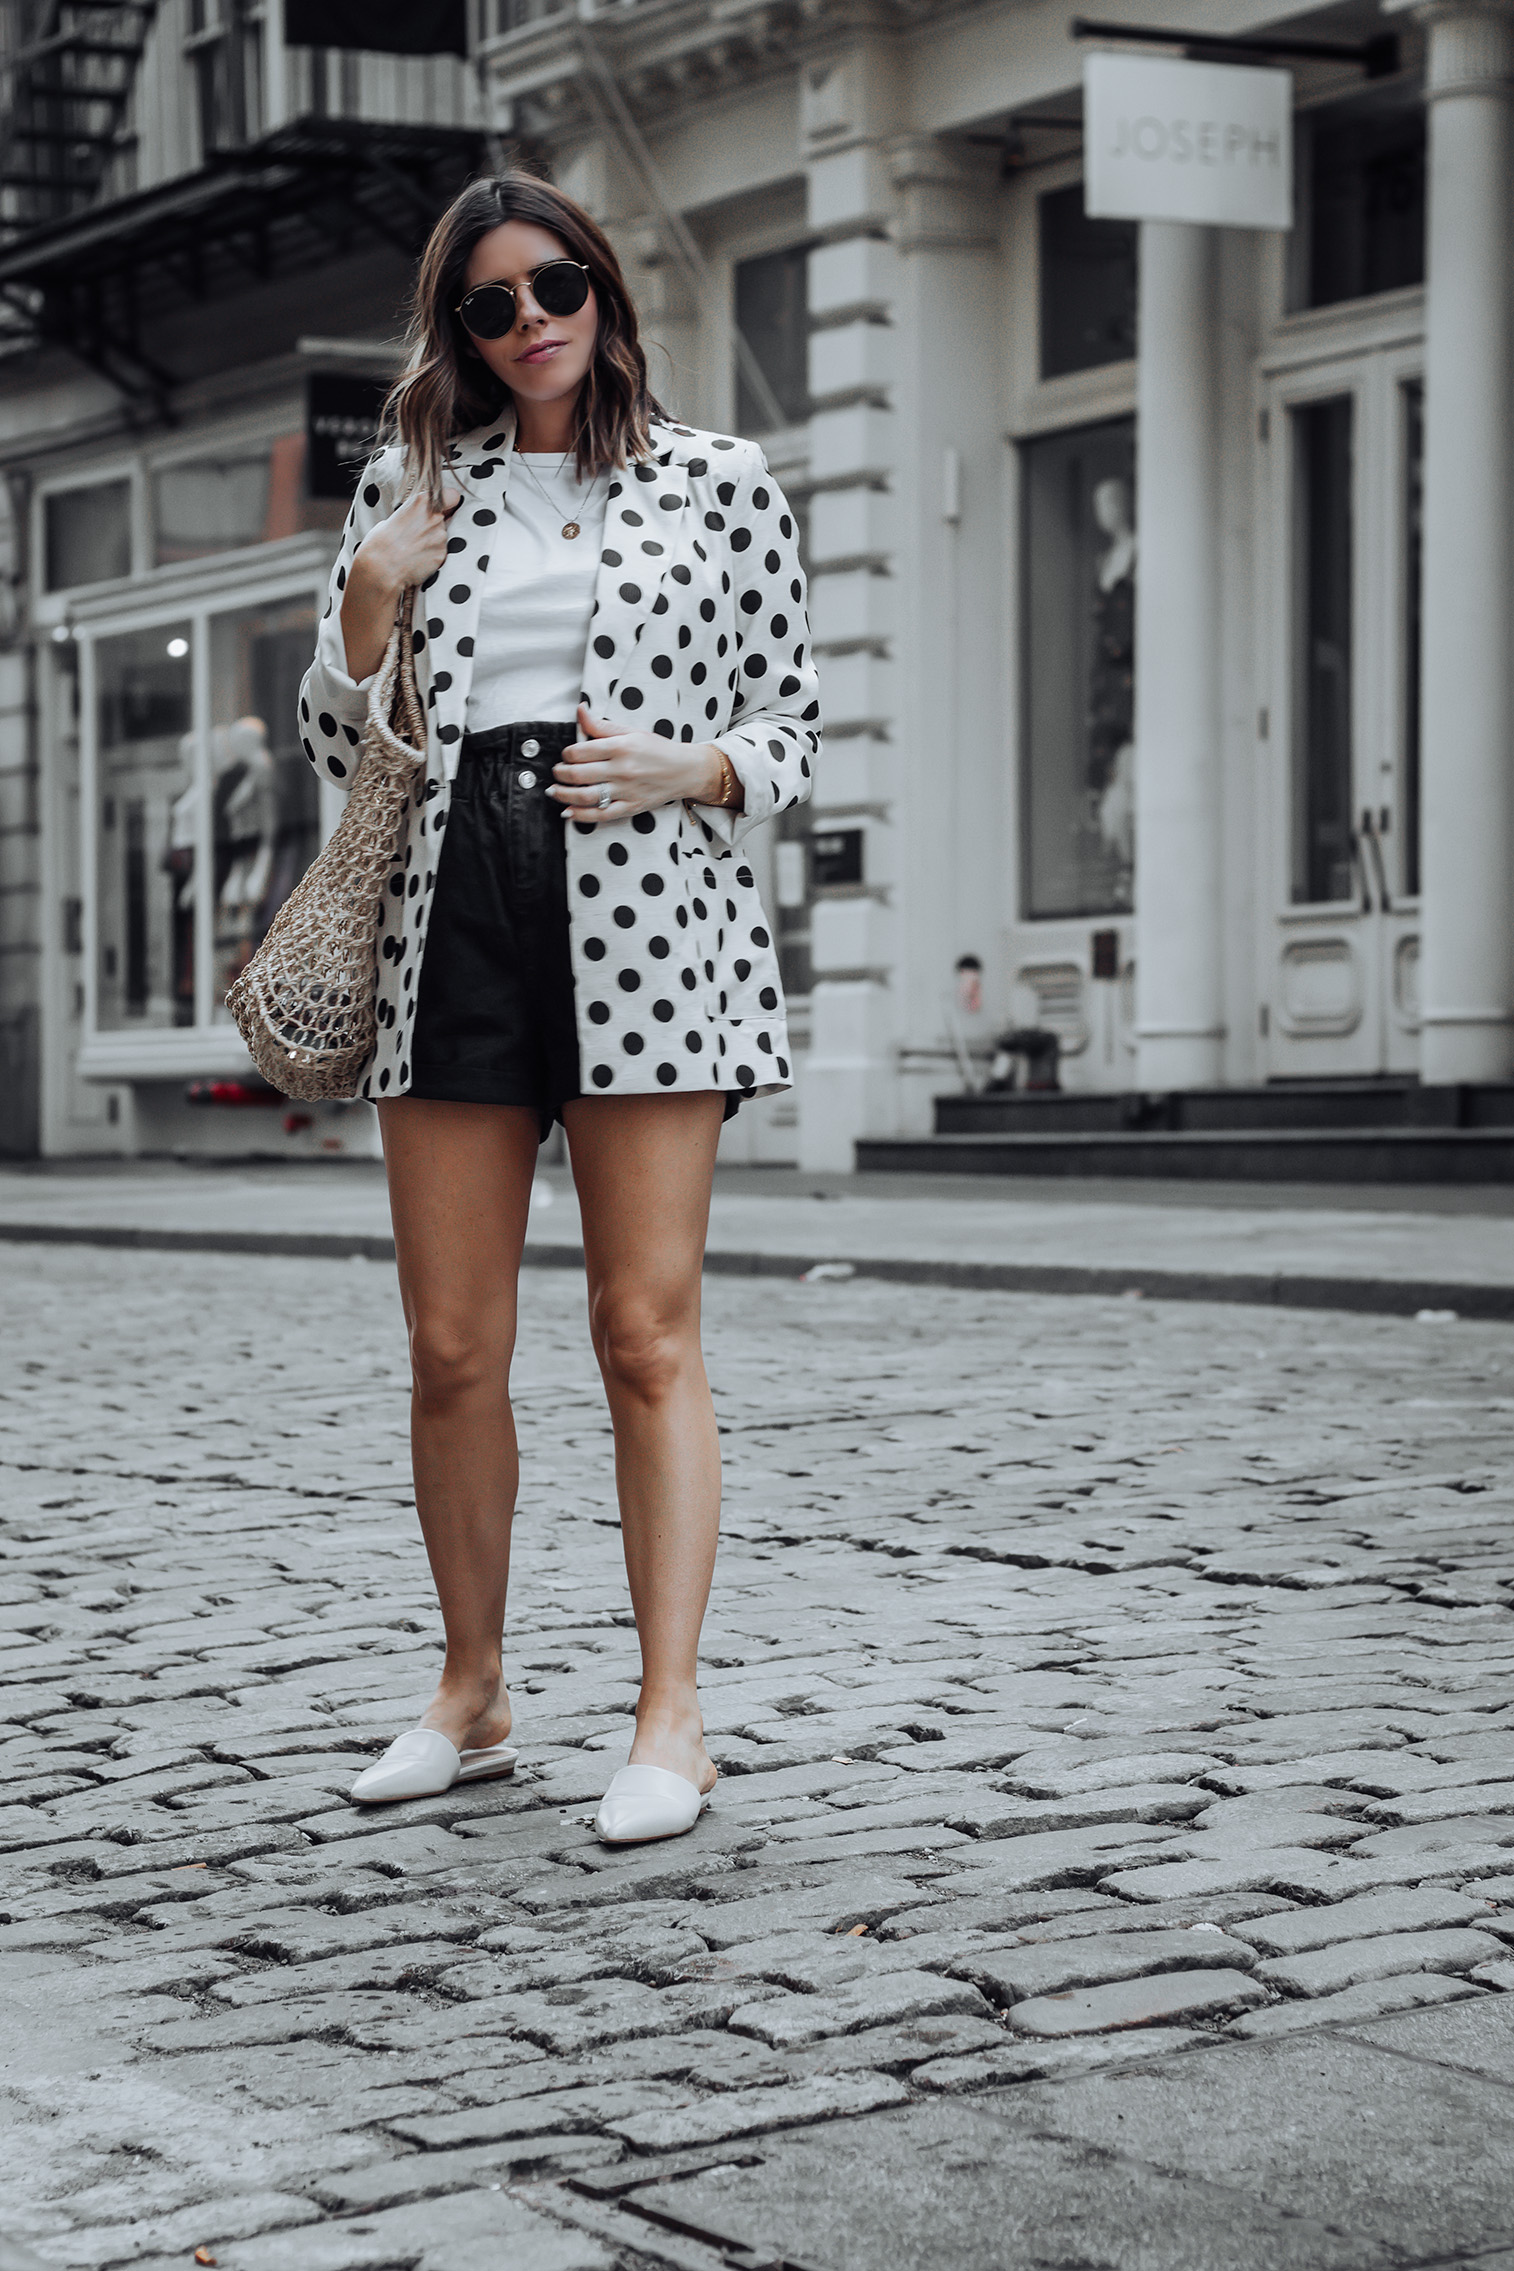 Linen spotted blazer | Click to shop the look: Black Paper Bag Shorts (similar)| Linen Spotted Jacket | Straw Tote bag (similar) | #liketkit #blazer #streetstyle #ootd #strawbag #topshop #casualfashion #nycblogger